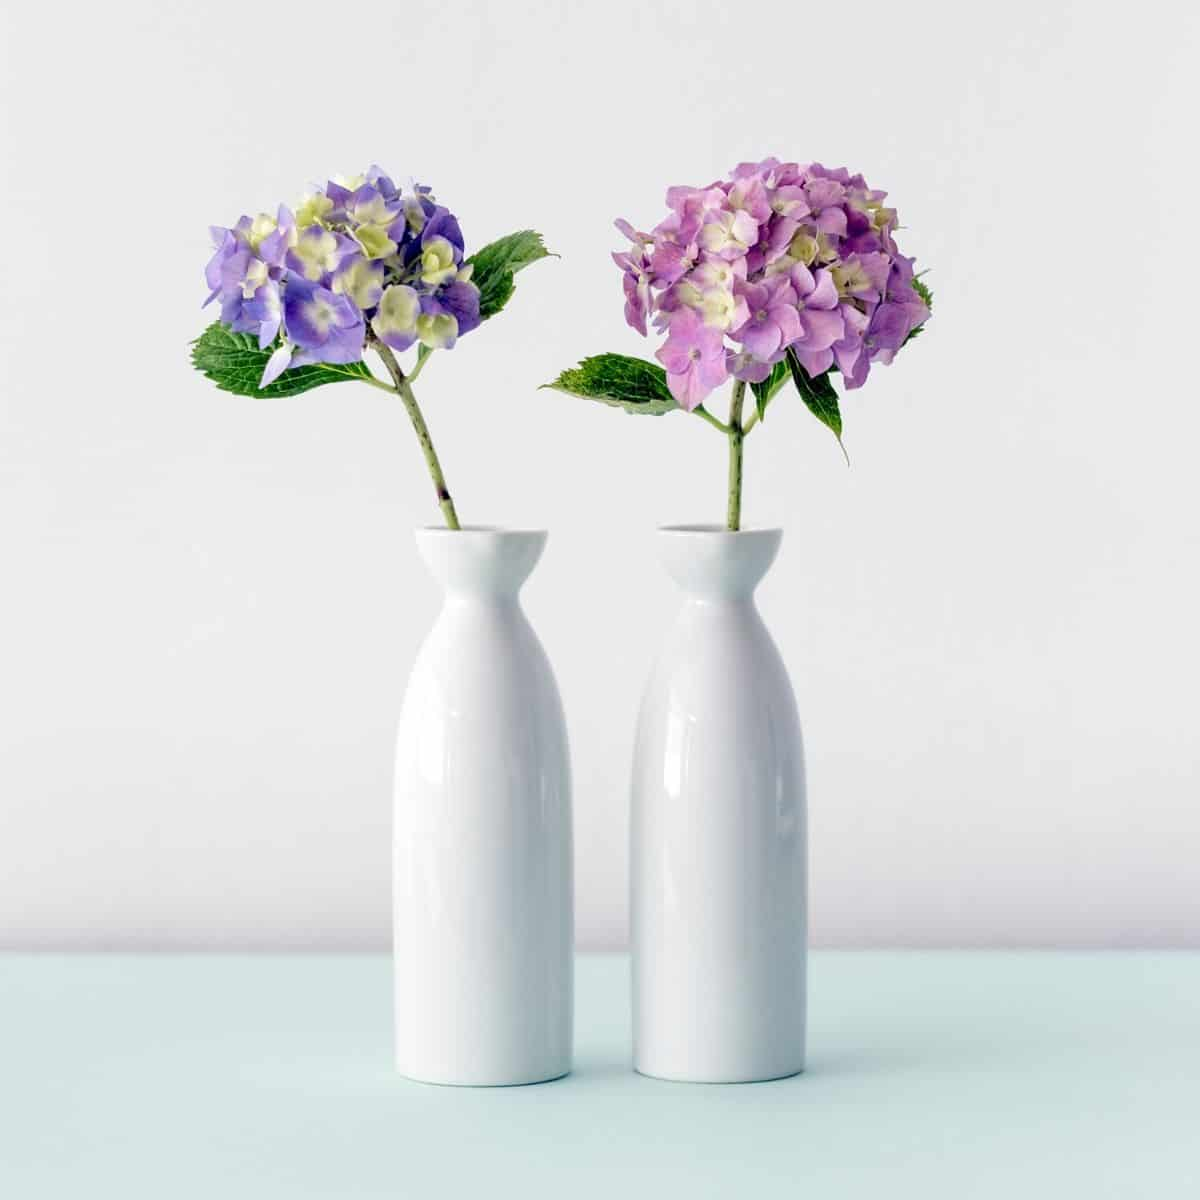 two vases holding purple and pink flowers